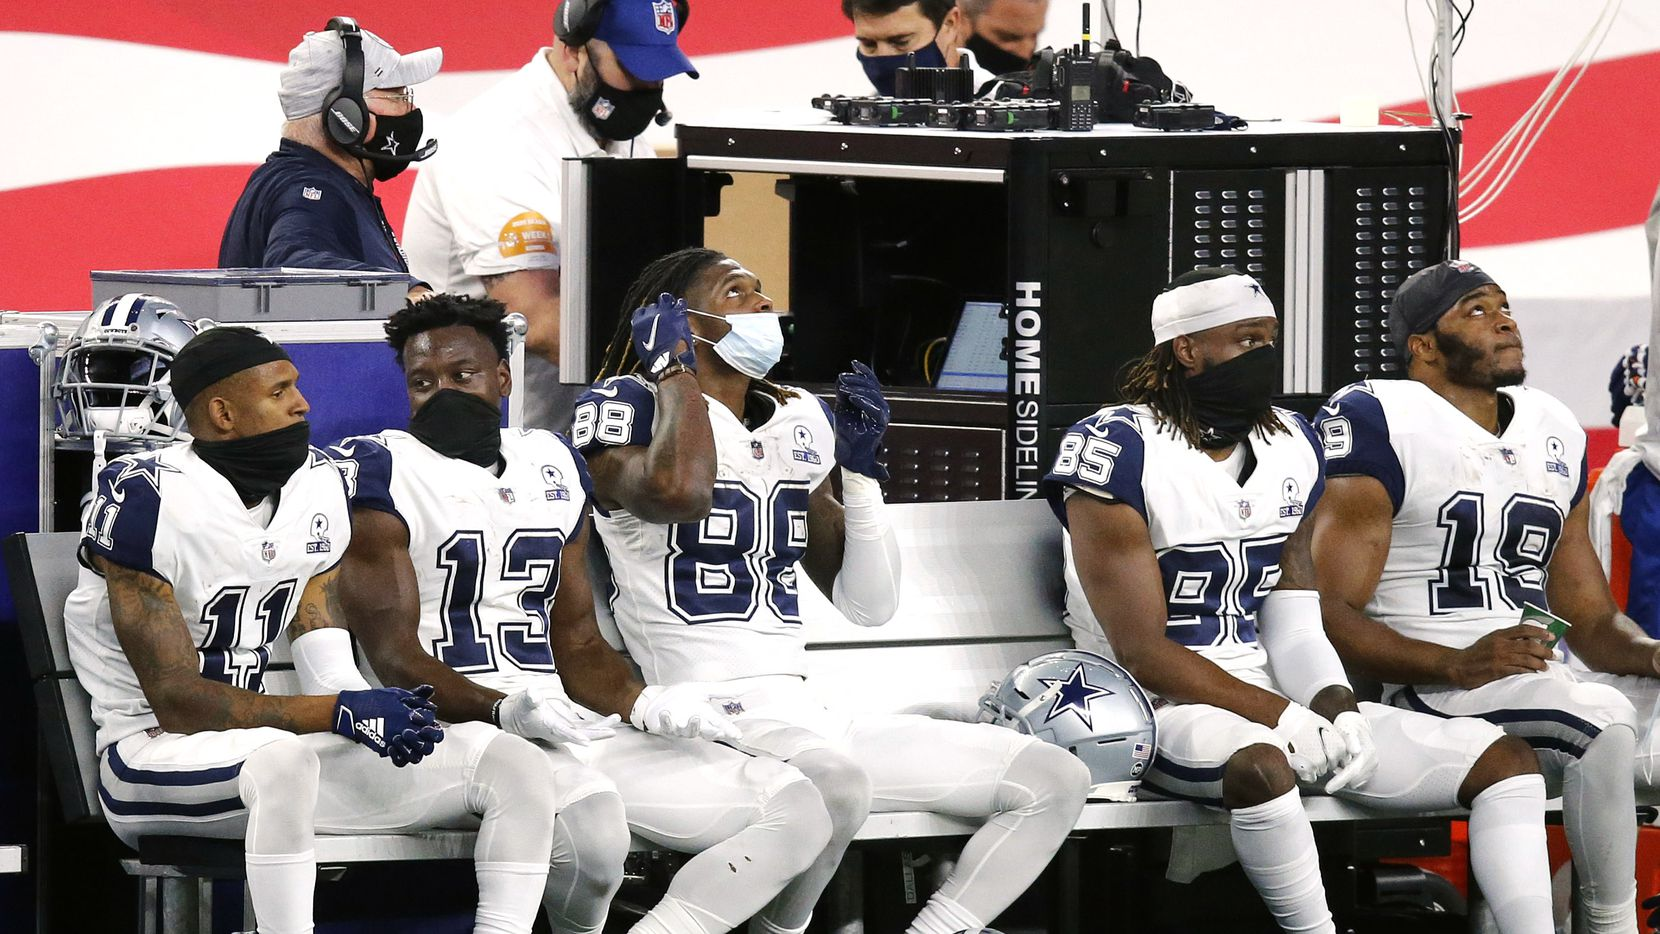 The Dallas Cowboys receiving corps of Ced Wilson (11), Michael Gallup (13), CeeDee Lamb (88), Noah Brown (85) and Amari Cooper (19) don their masks on the bench during the fourth quarter at AT&T Stadium in Arlington, Thursday, November 26, 2020. The Cowboys lost to the Washington Football Team, 41-16.